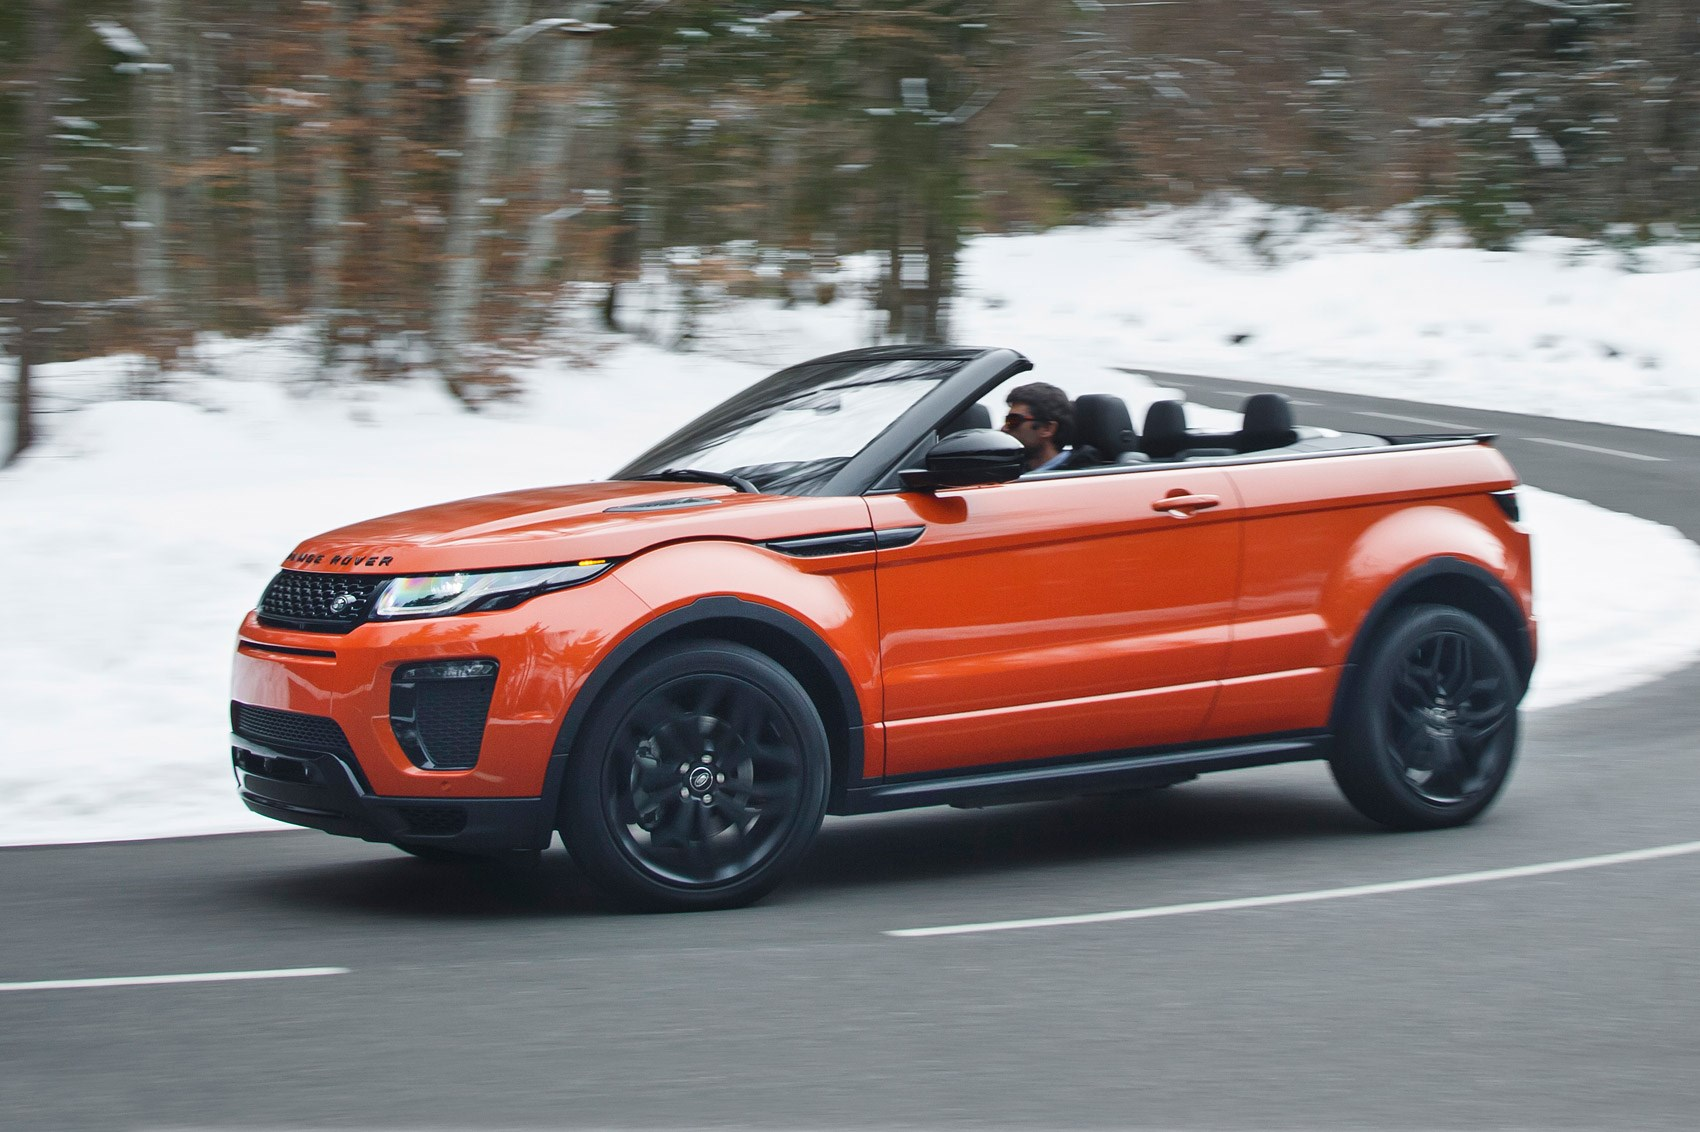 Used Land Rovers For Sale >> Range Rover Evoque Convertible 2.0D HSE Dynamic Lux (2016) review | CAR Magazine